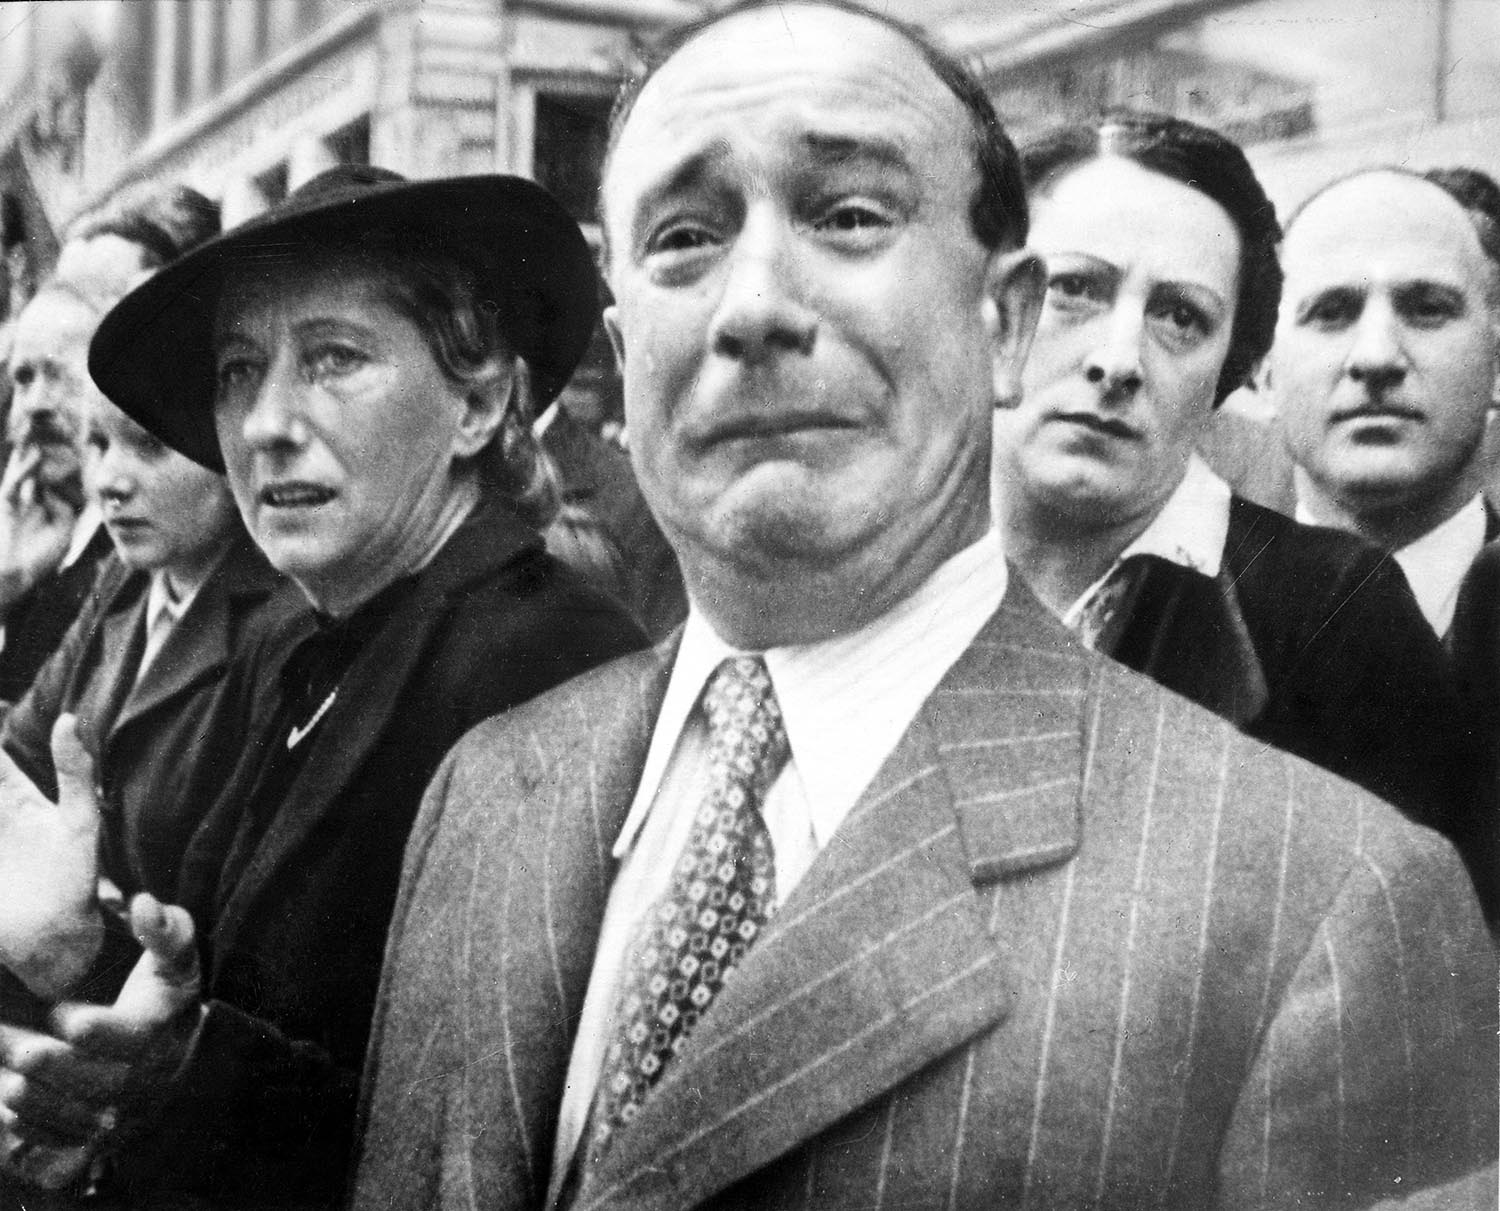 French people staring and waving at the French Army remaining troops leaving metropolitan France at Marseilles harbor, 1940.